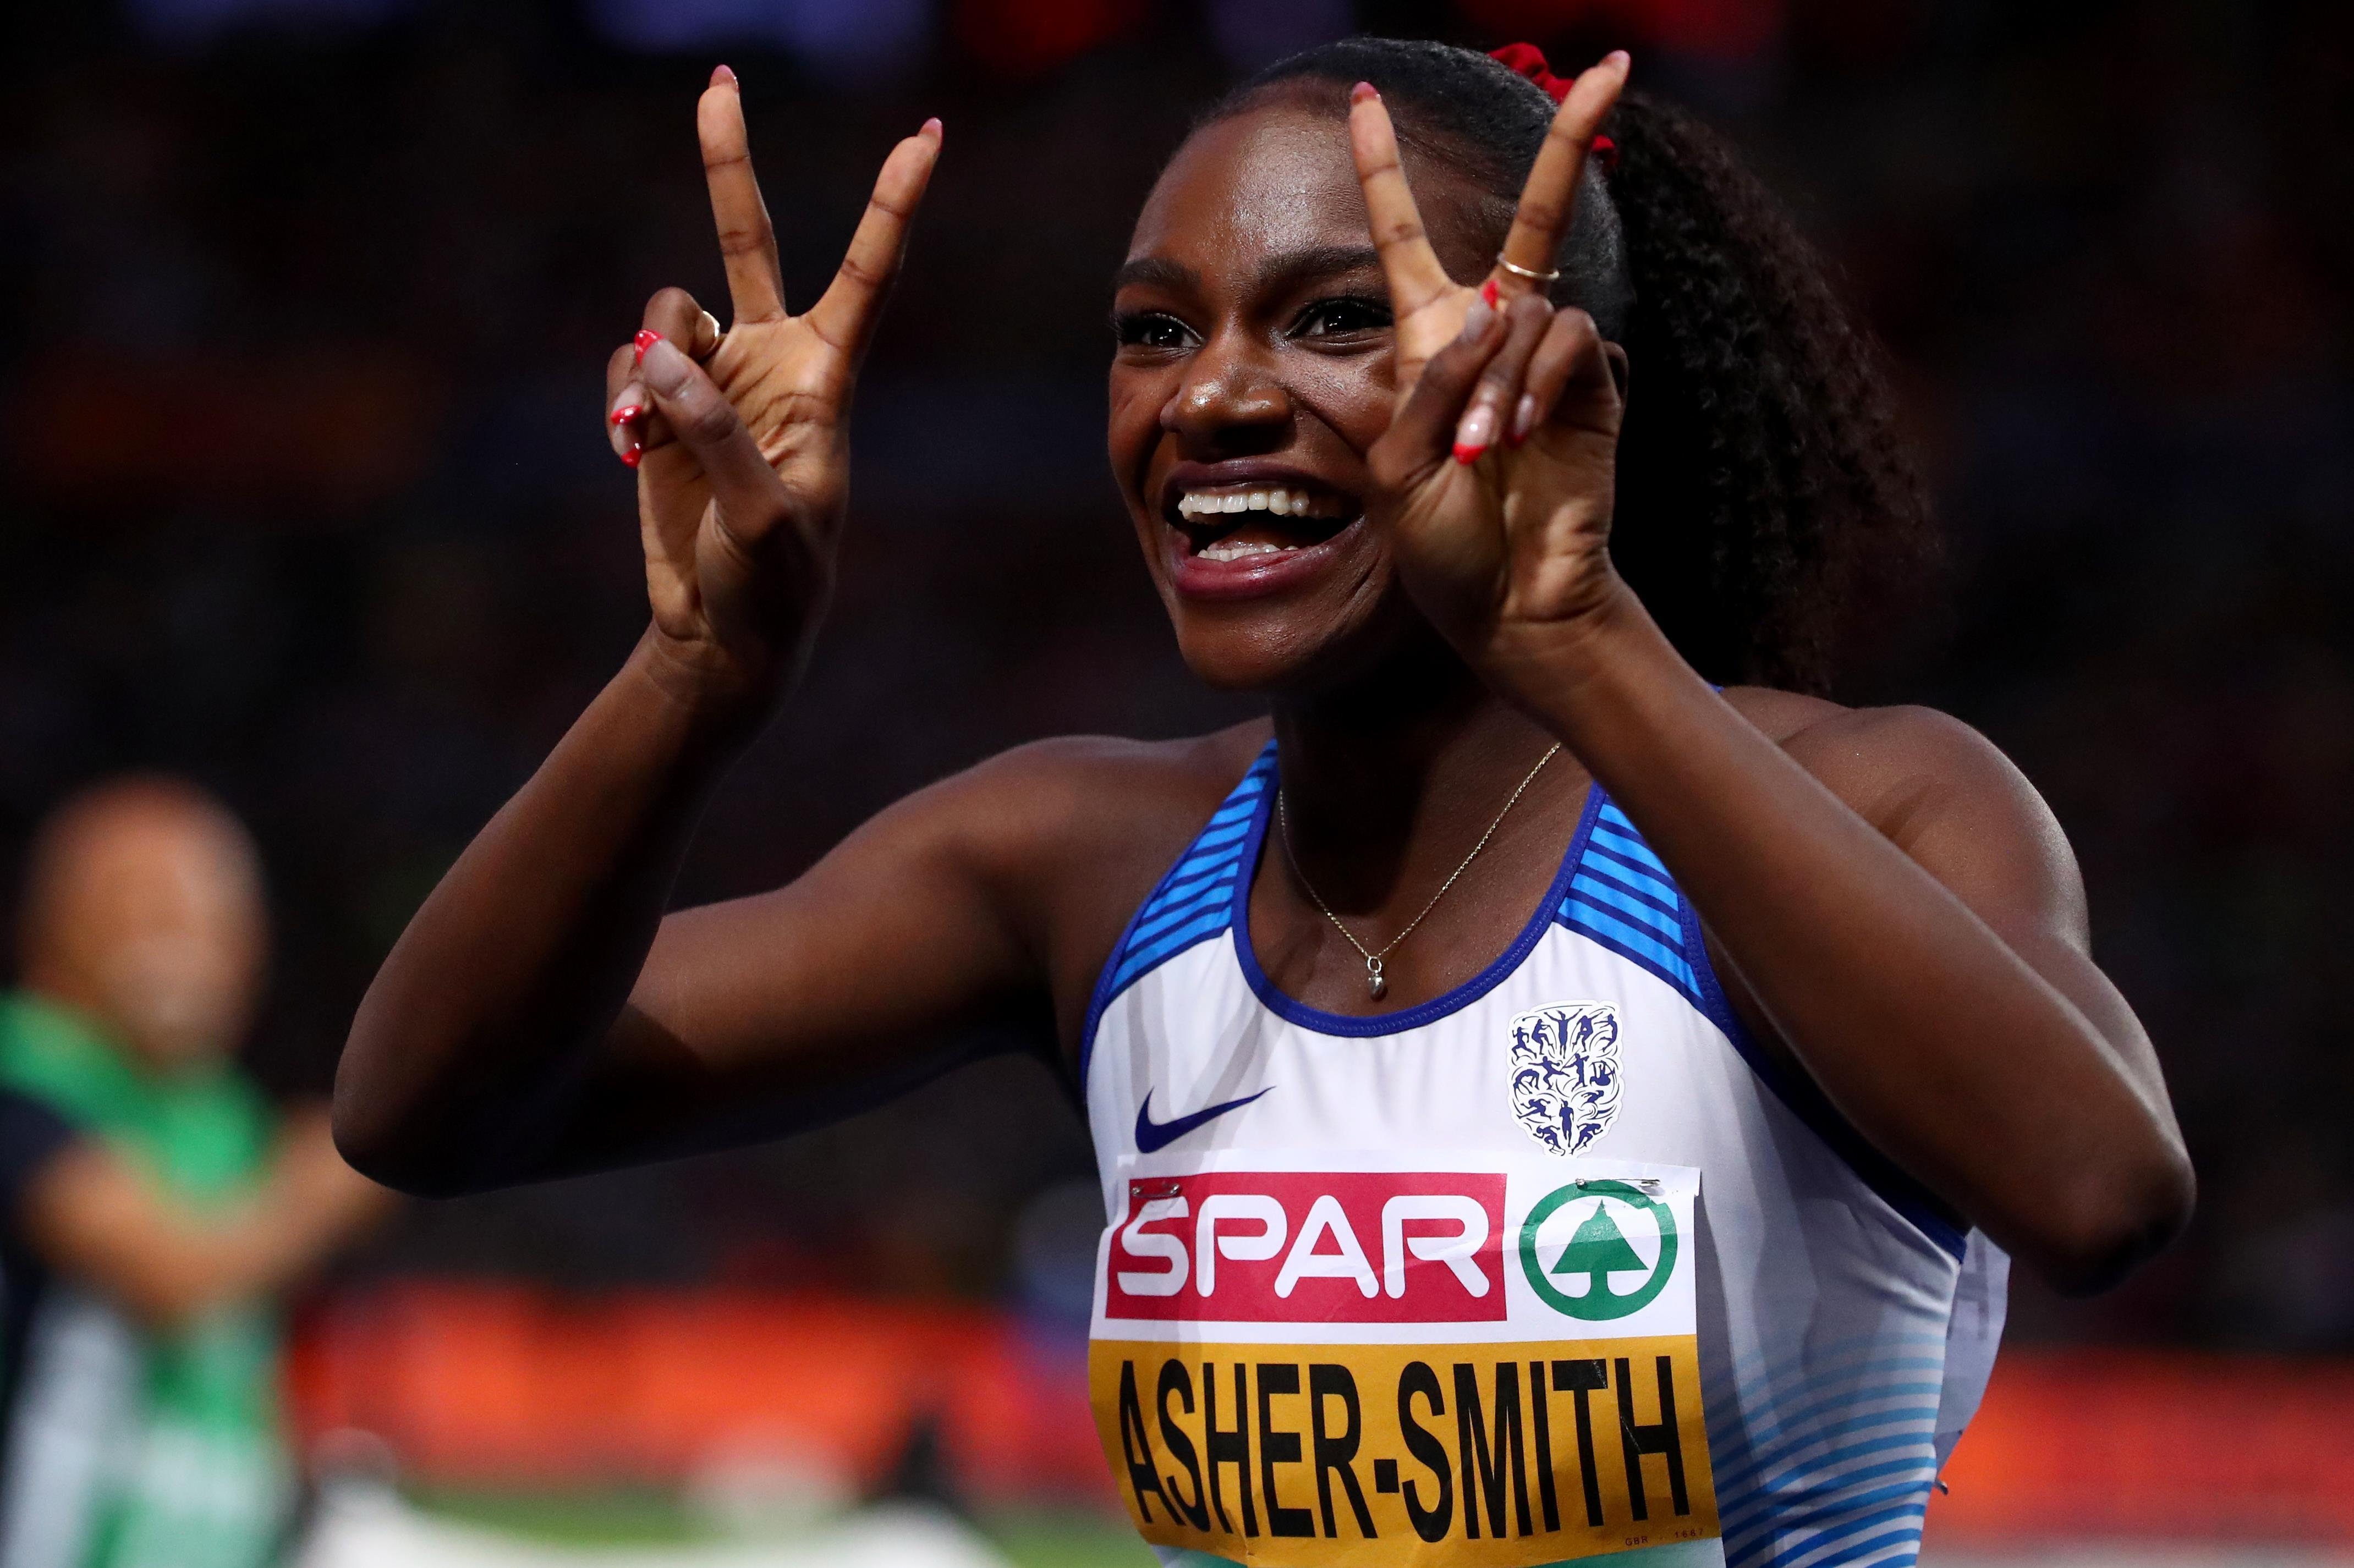 Dina Asher-Smith added 200m gold to her 100m glory from Tuesday